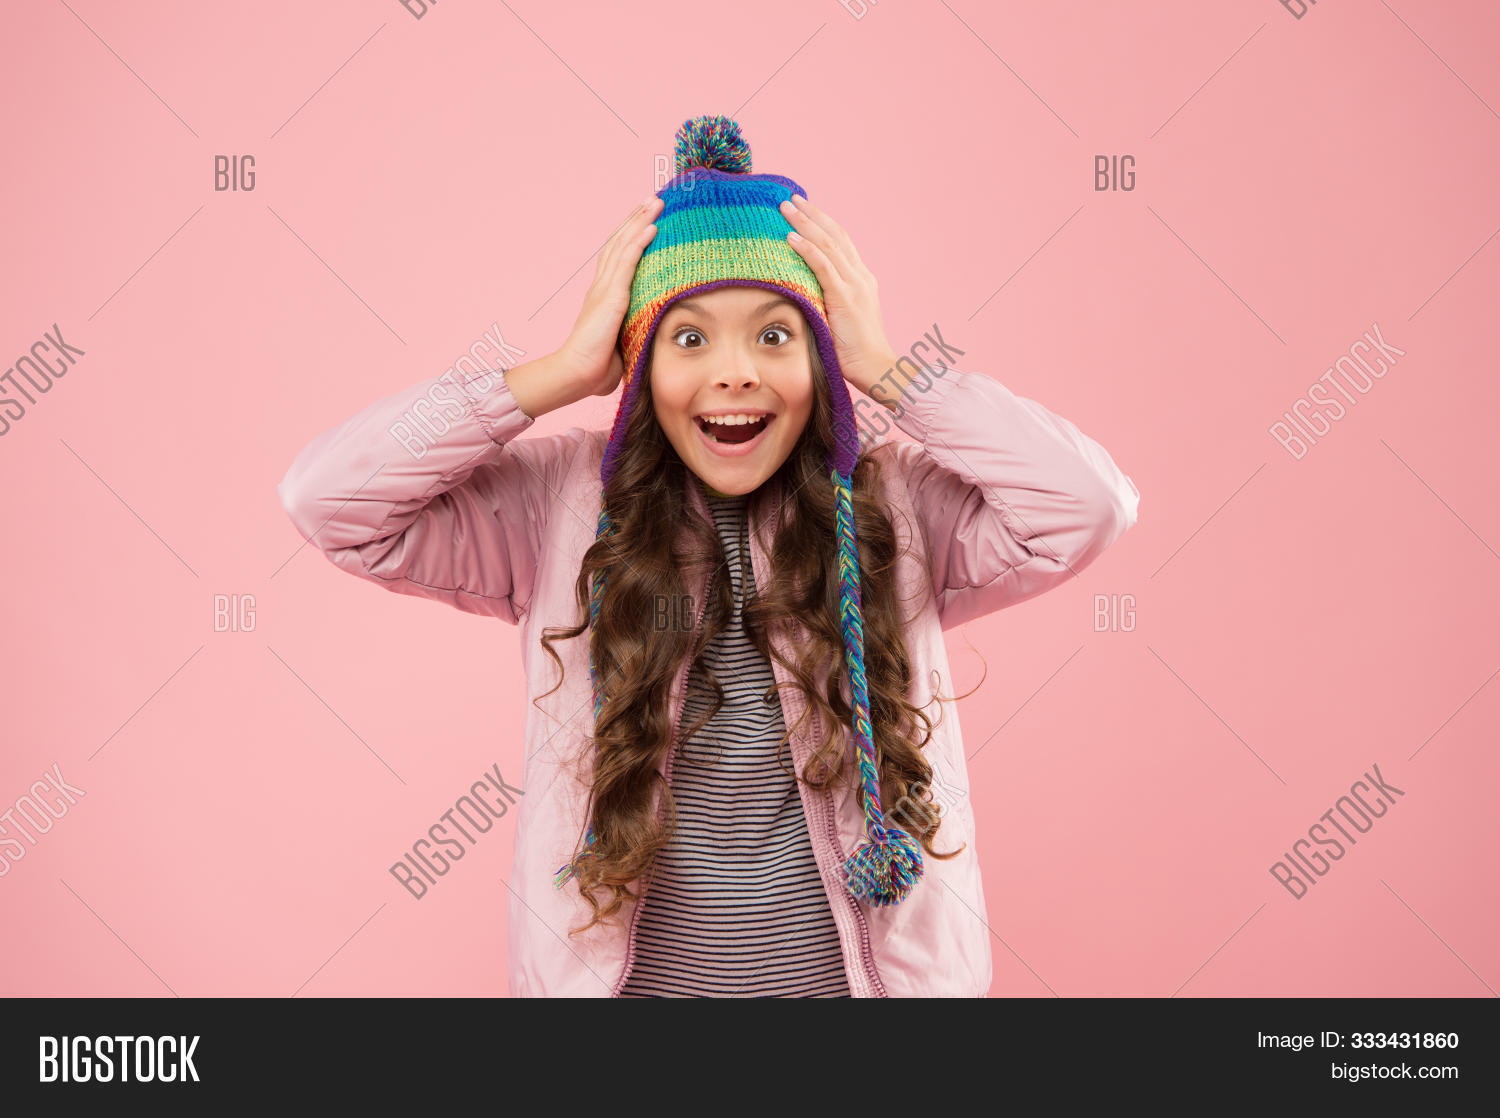 accessory,adorable,autumn,baby,background,beautiful,beauty,boutique,brunette,casual,caucasian,child,childhood,cute,design,fall,fashion,fashionable,garment,girl,hair,hairstyle,hat,head,kid,knit,knitted,little,long,look,model,mood,pink,playful,protect,season,small,style,stylish,trend,trendy,wardrobe,wear,winter